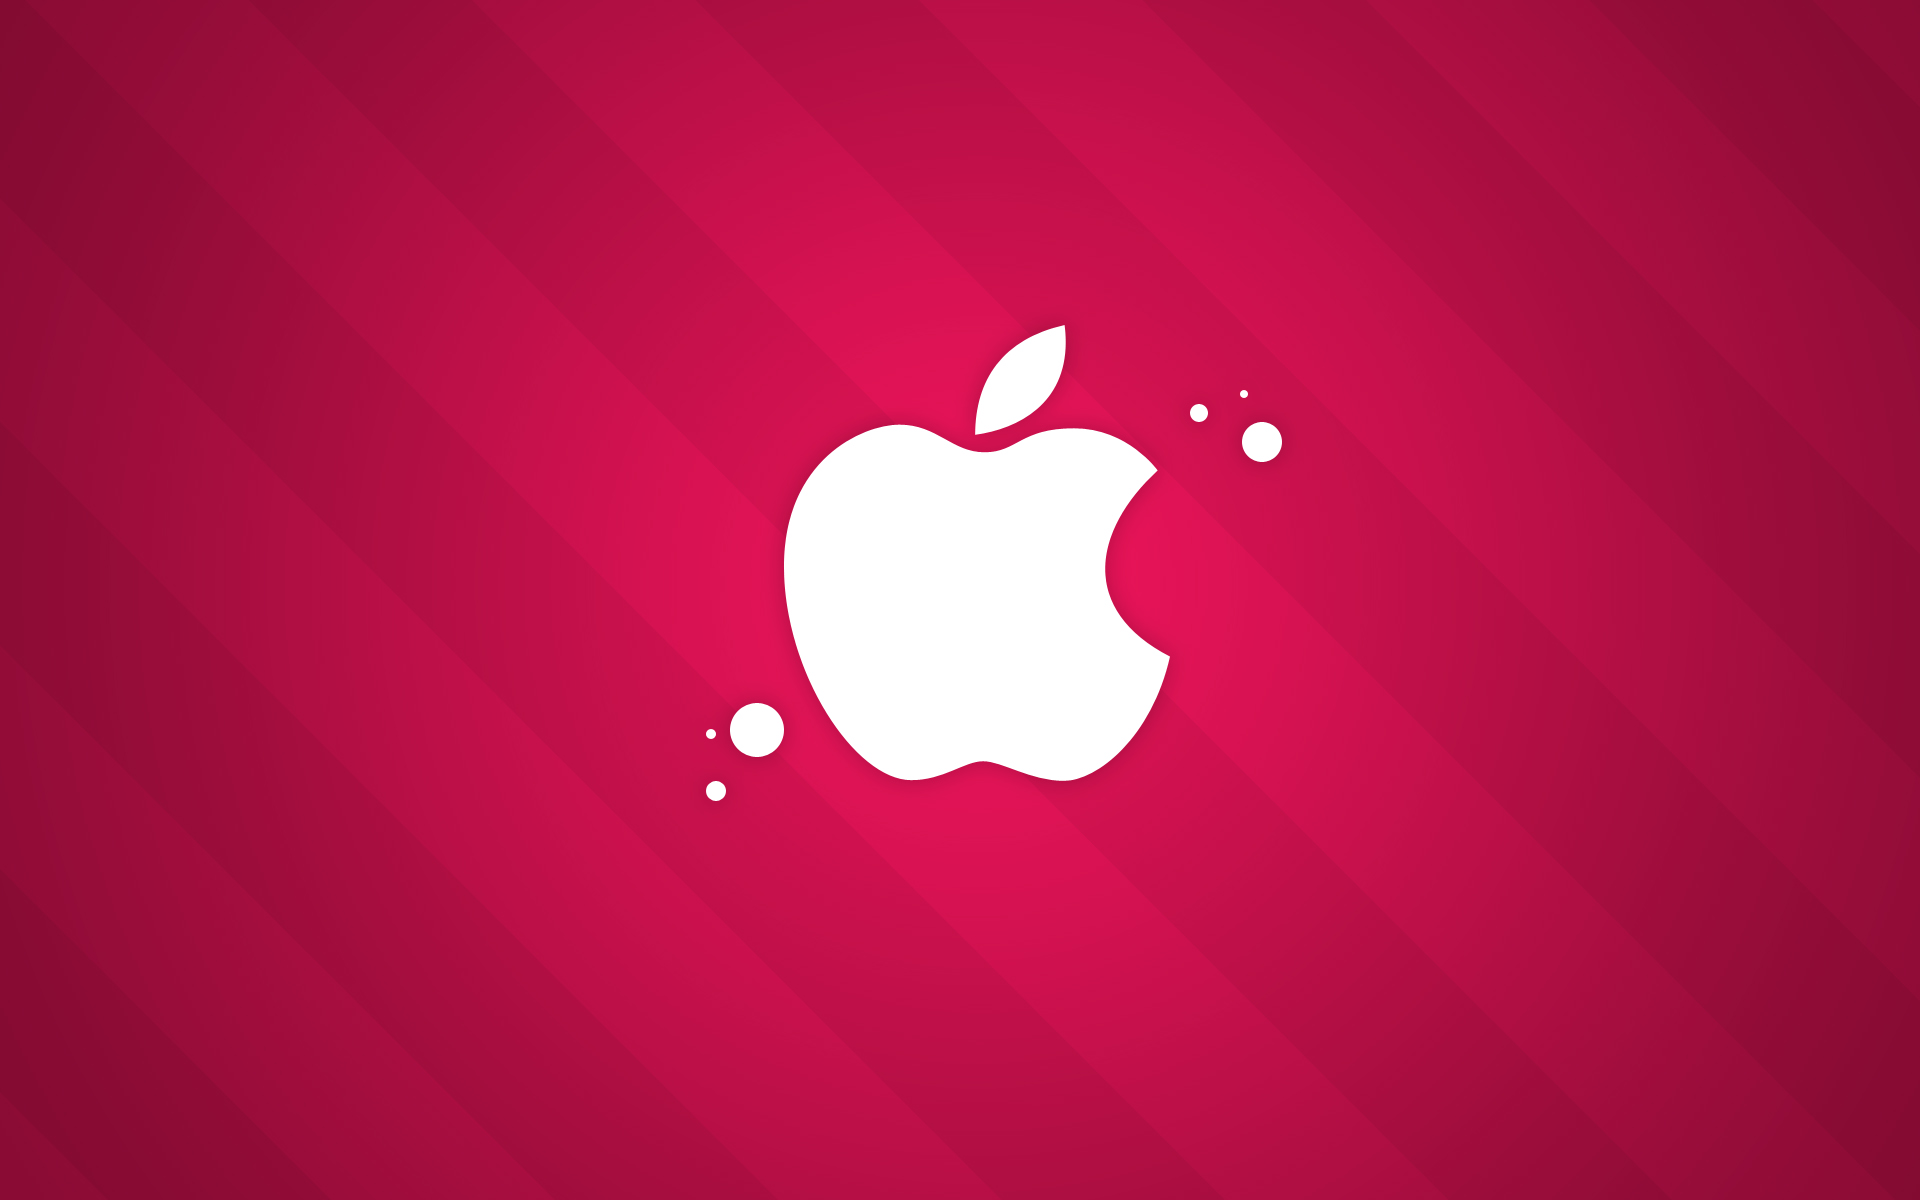 free apple desktop wallpaper - wallpapersafari